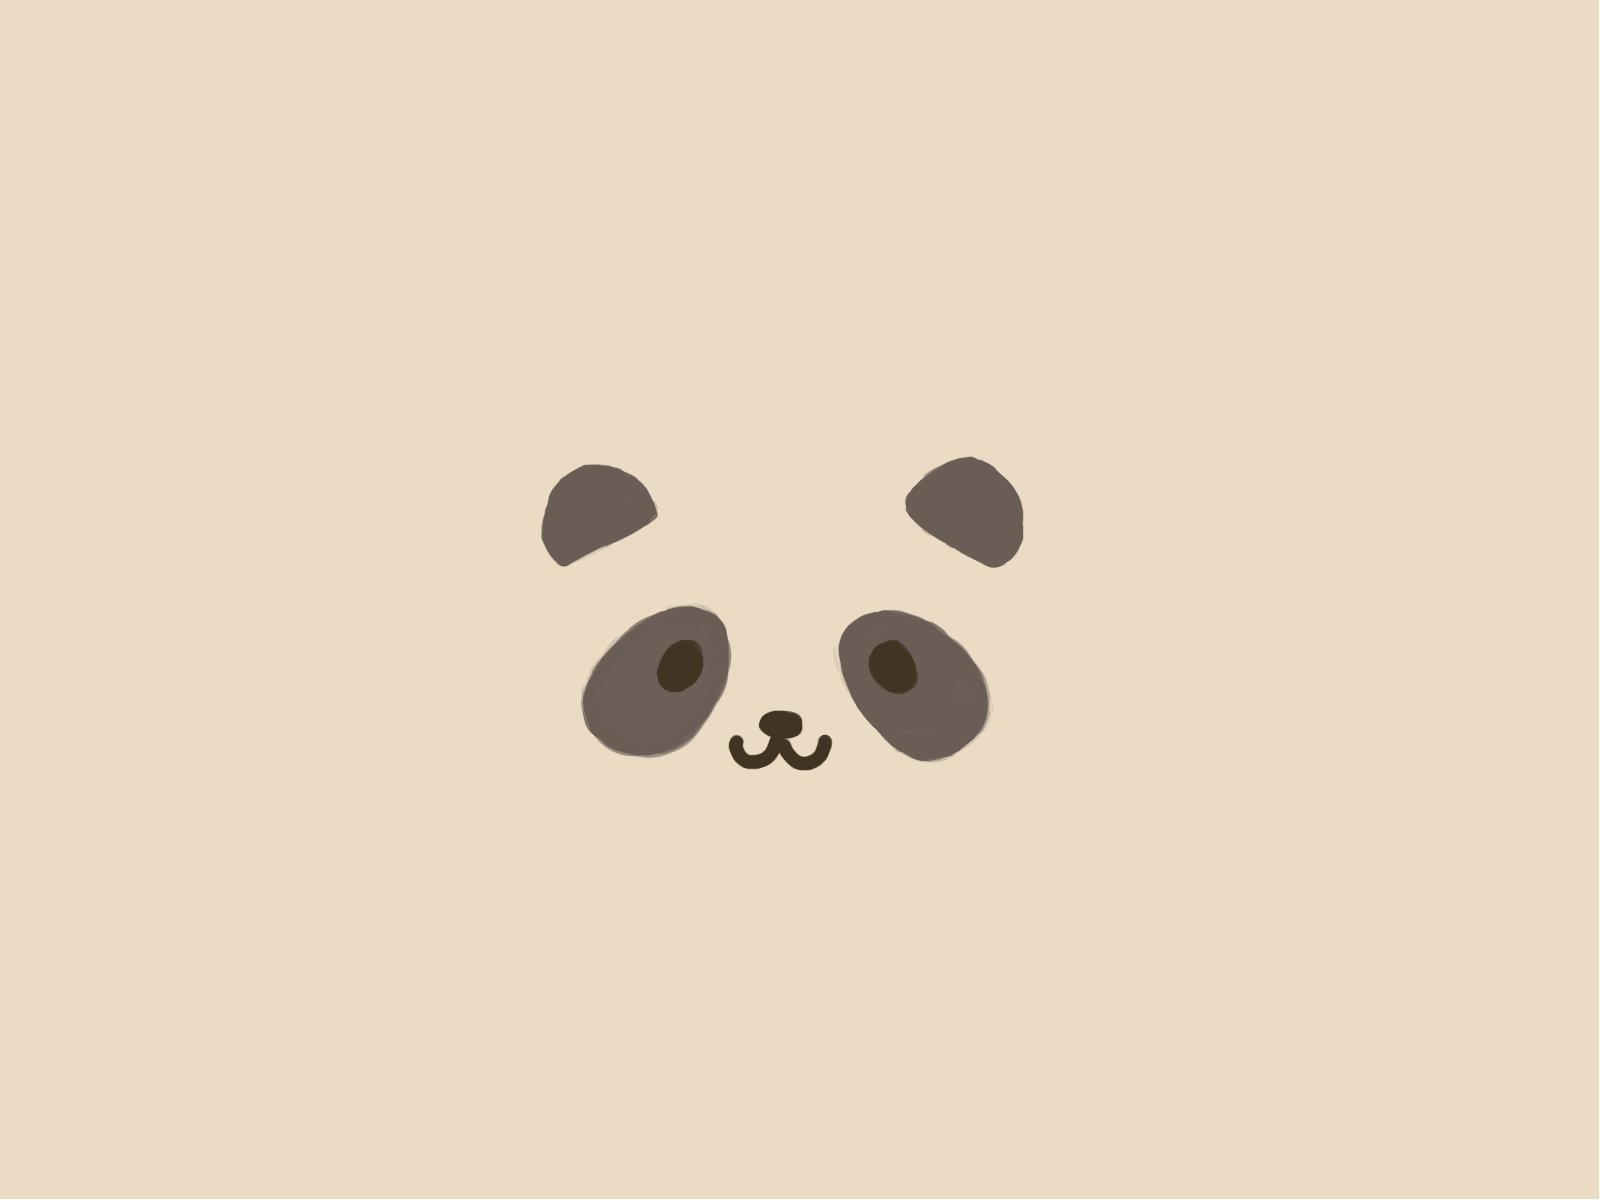 crazy pandalism panda wallpaper 1600x1200